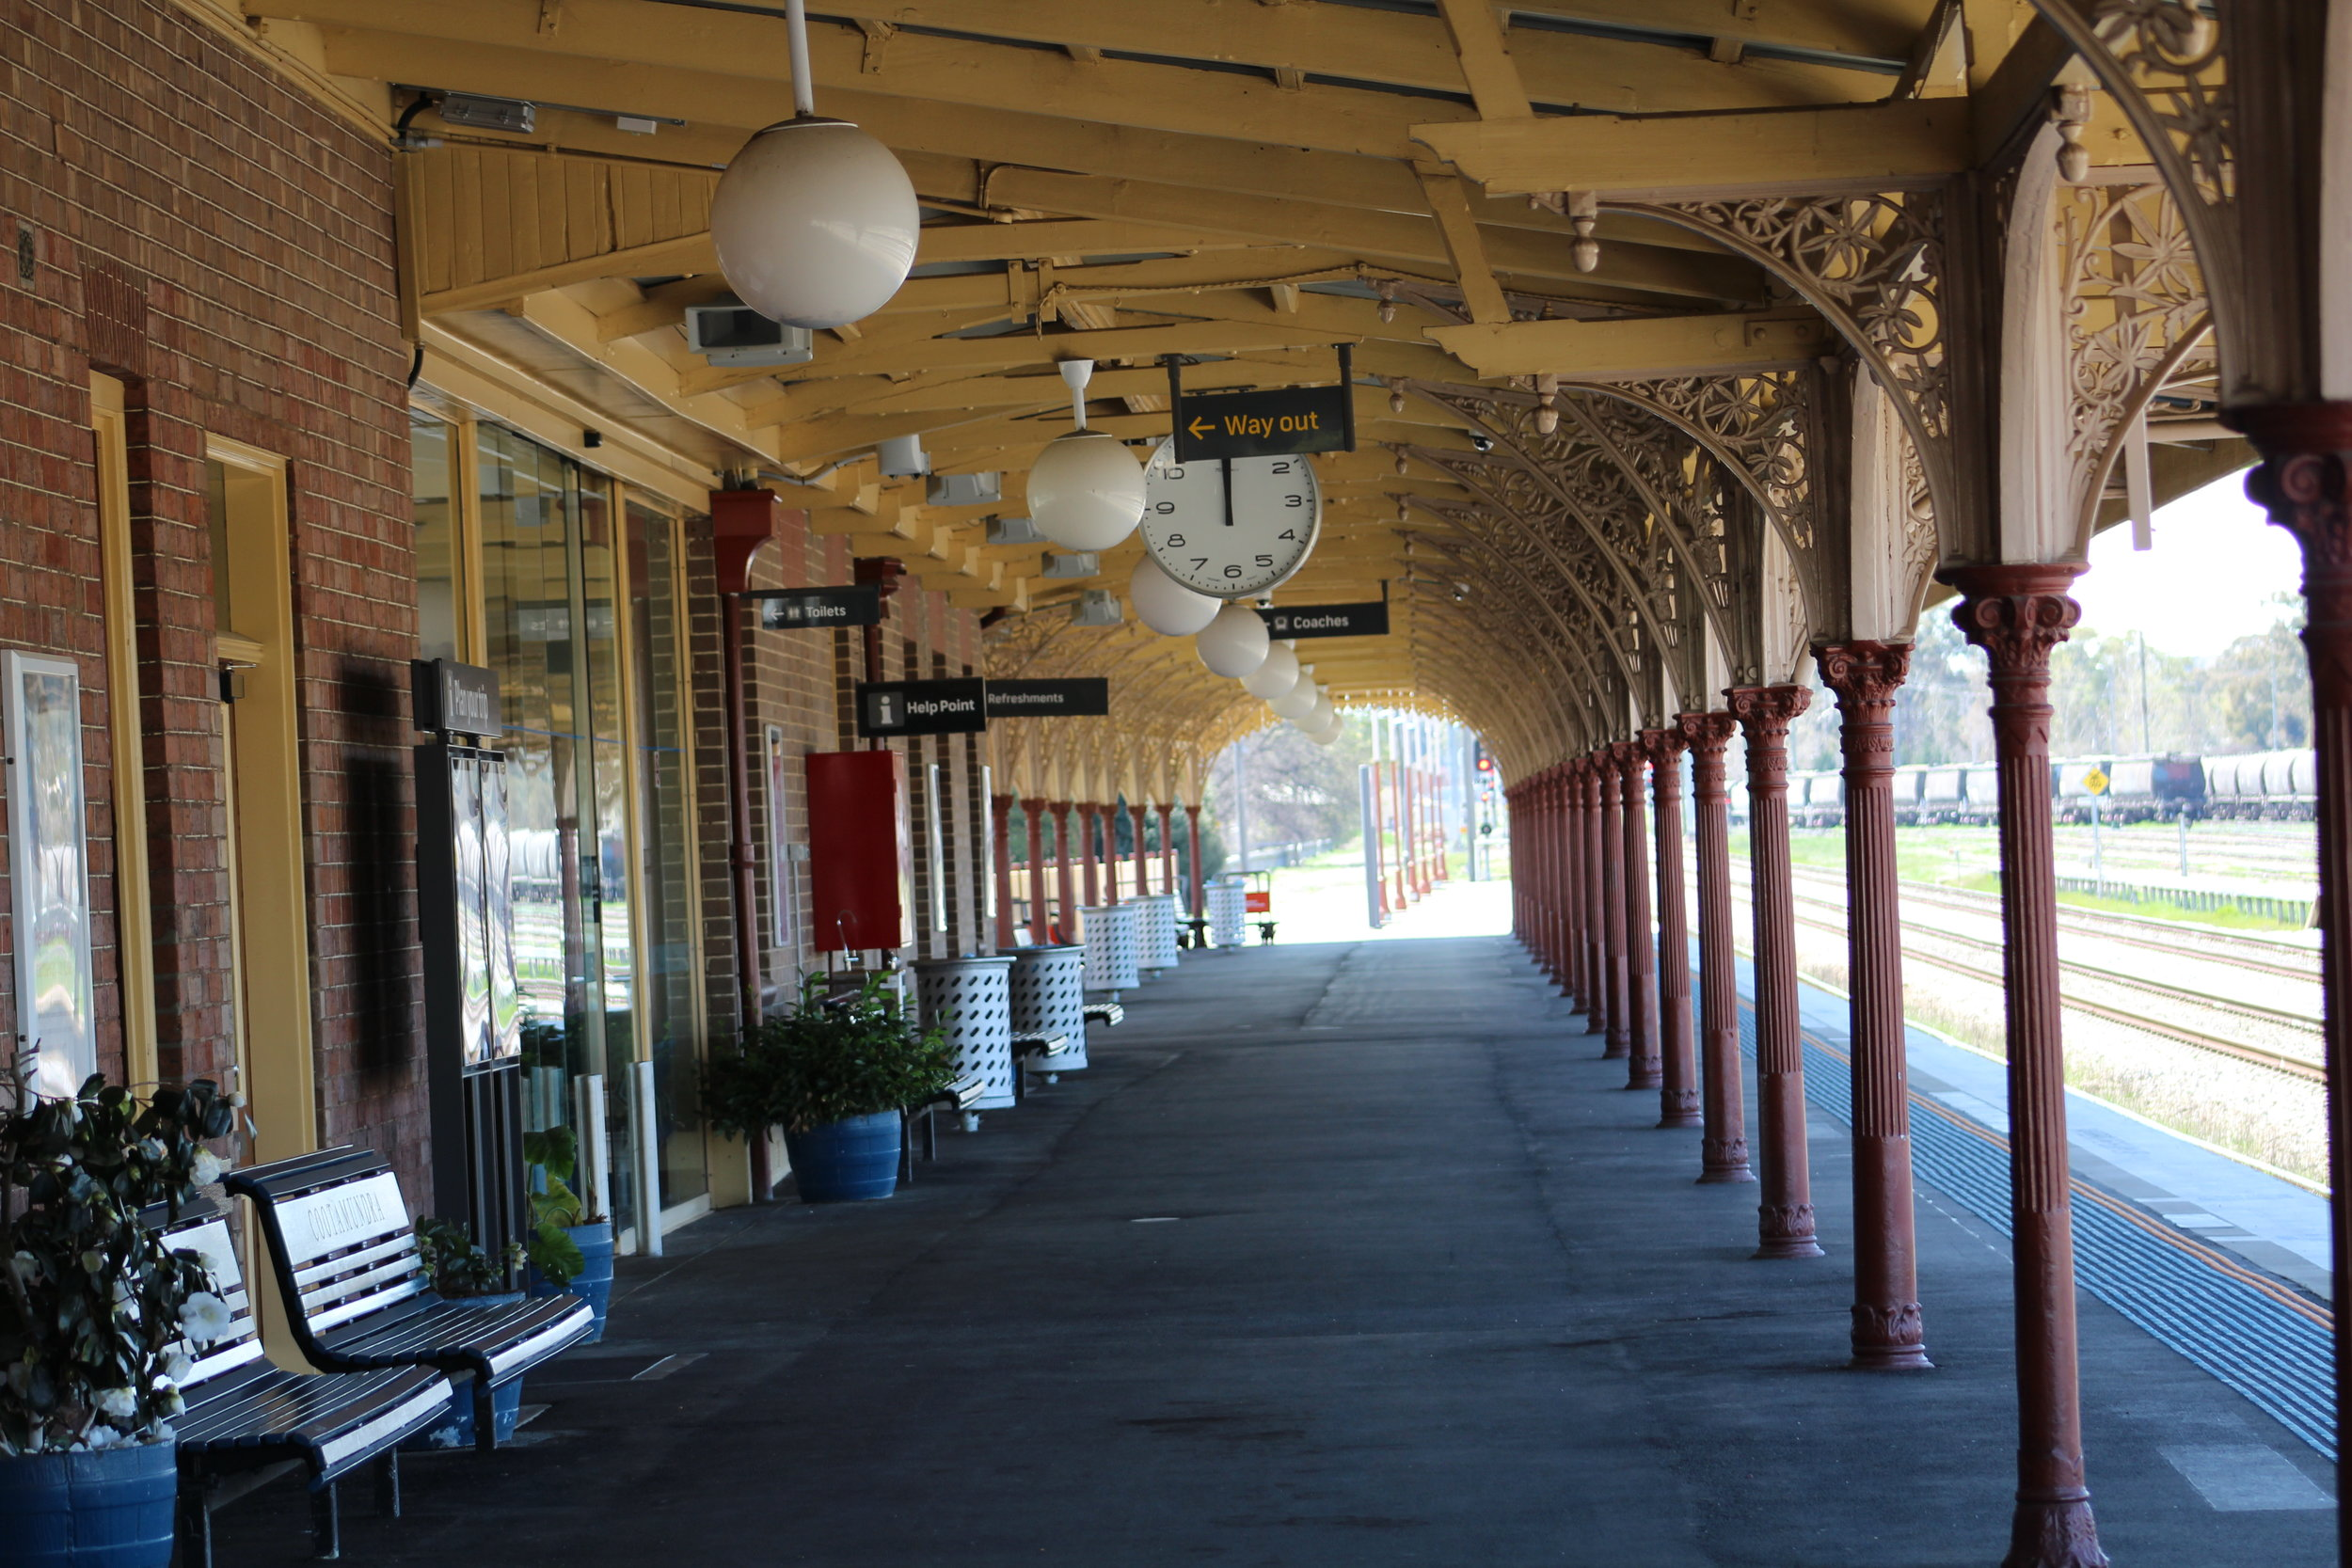 Cootamundra Railway Station platform  Photo Credit:  Jessie-Lee Waite